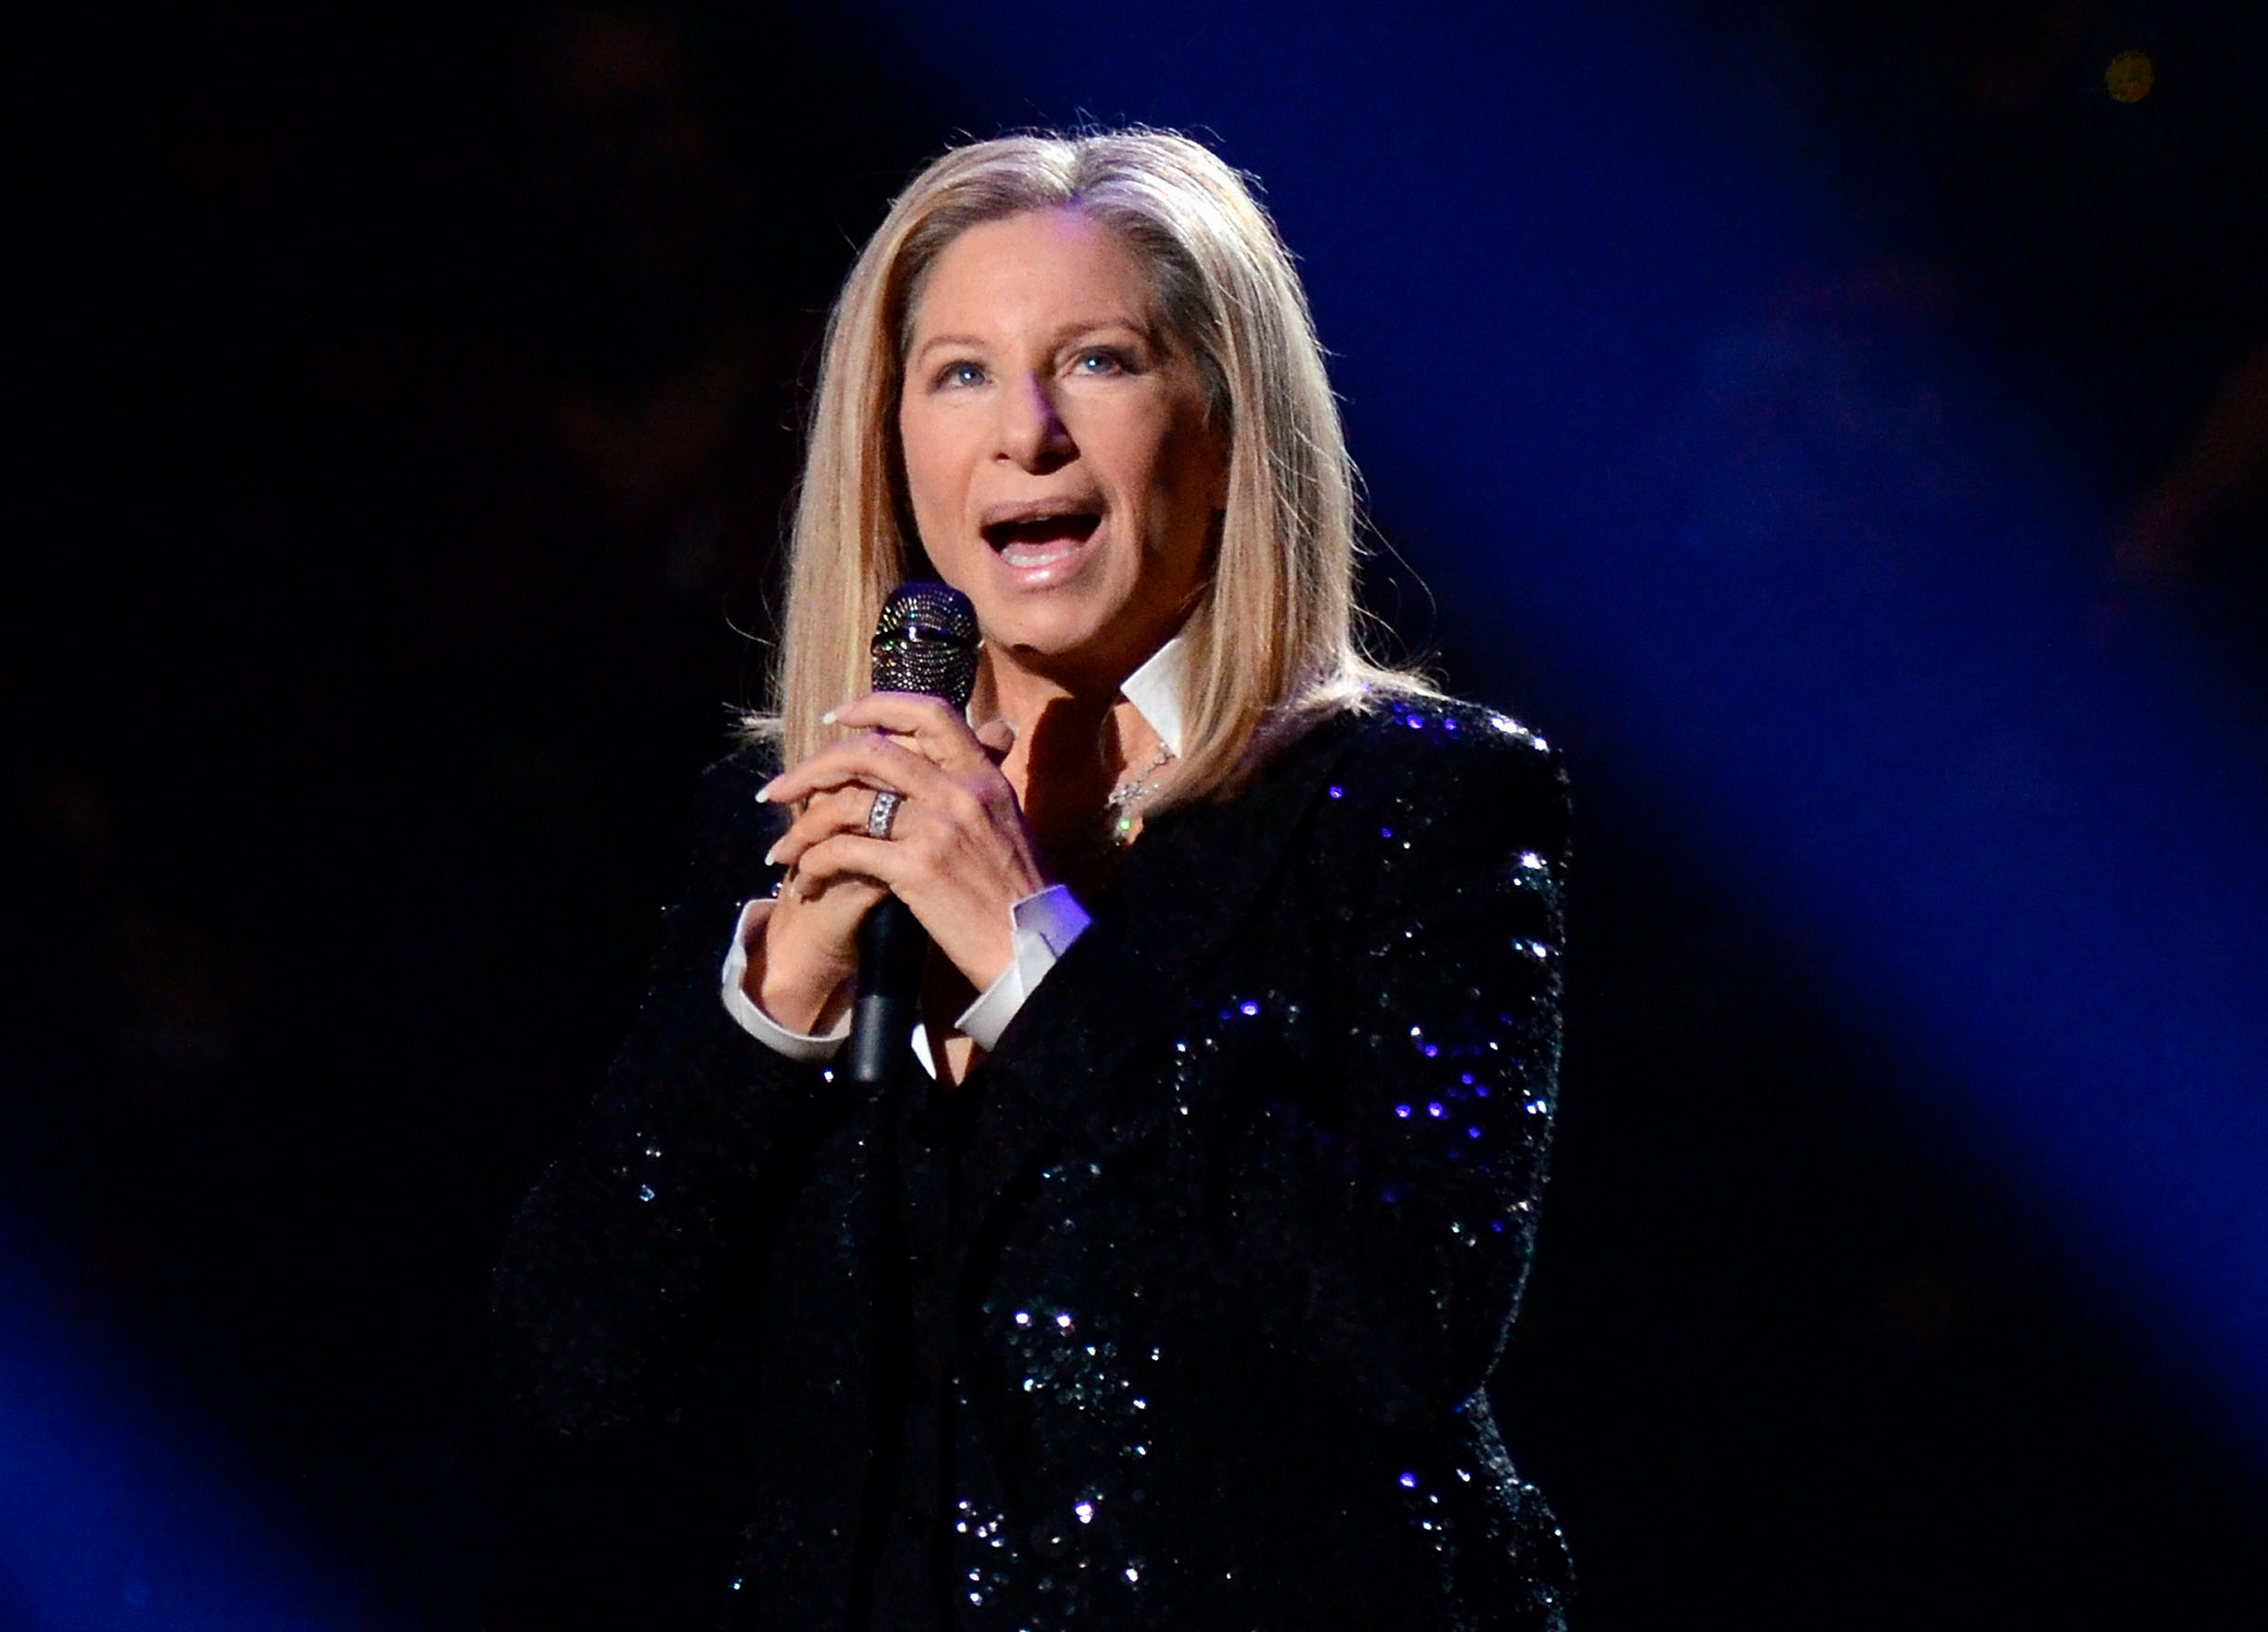 Barbra Streisand Draws Criticism for Stance on Michael Jackson's 'Leaving Neverland' Accusers